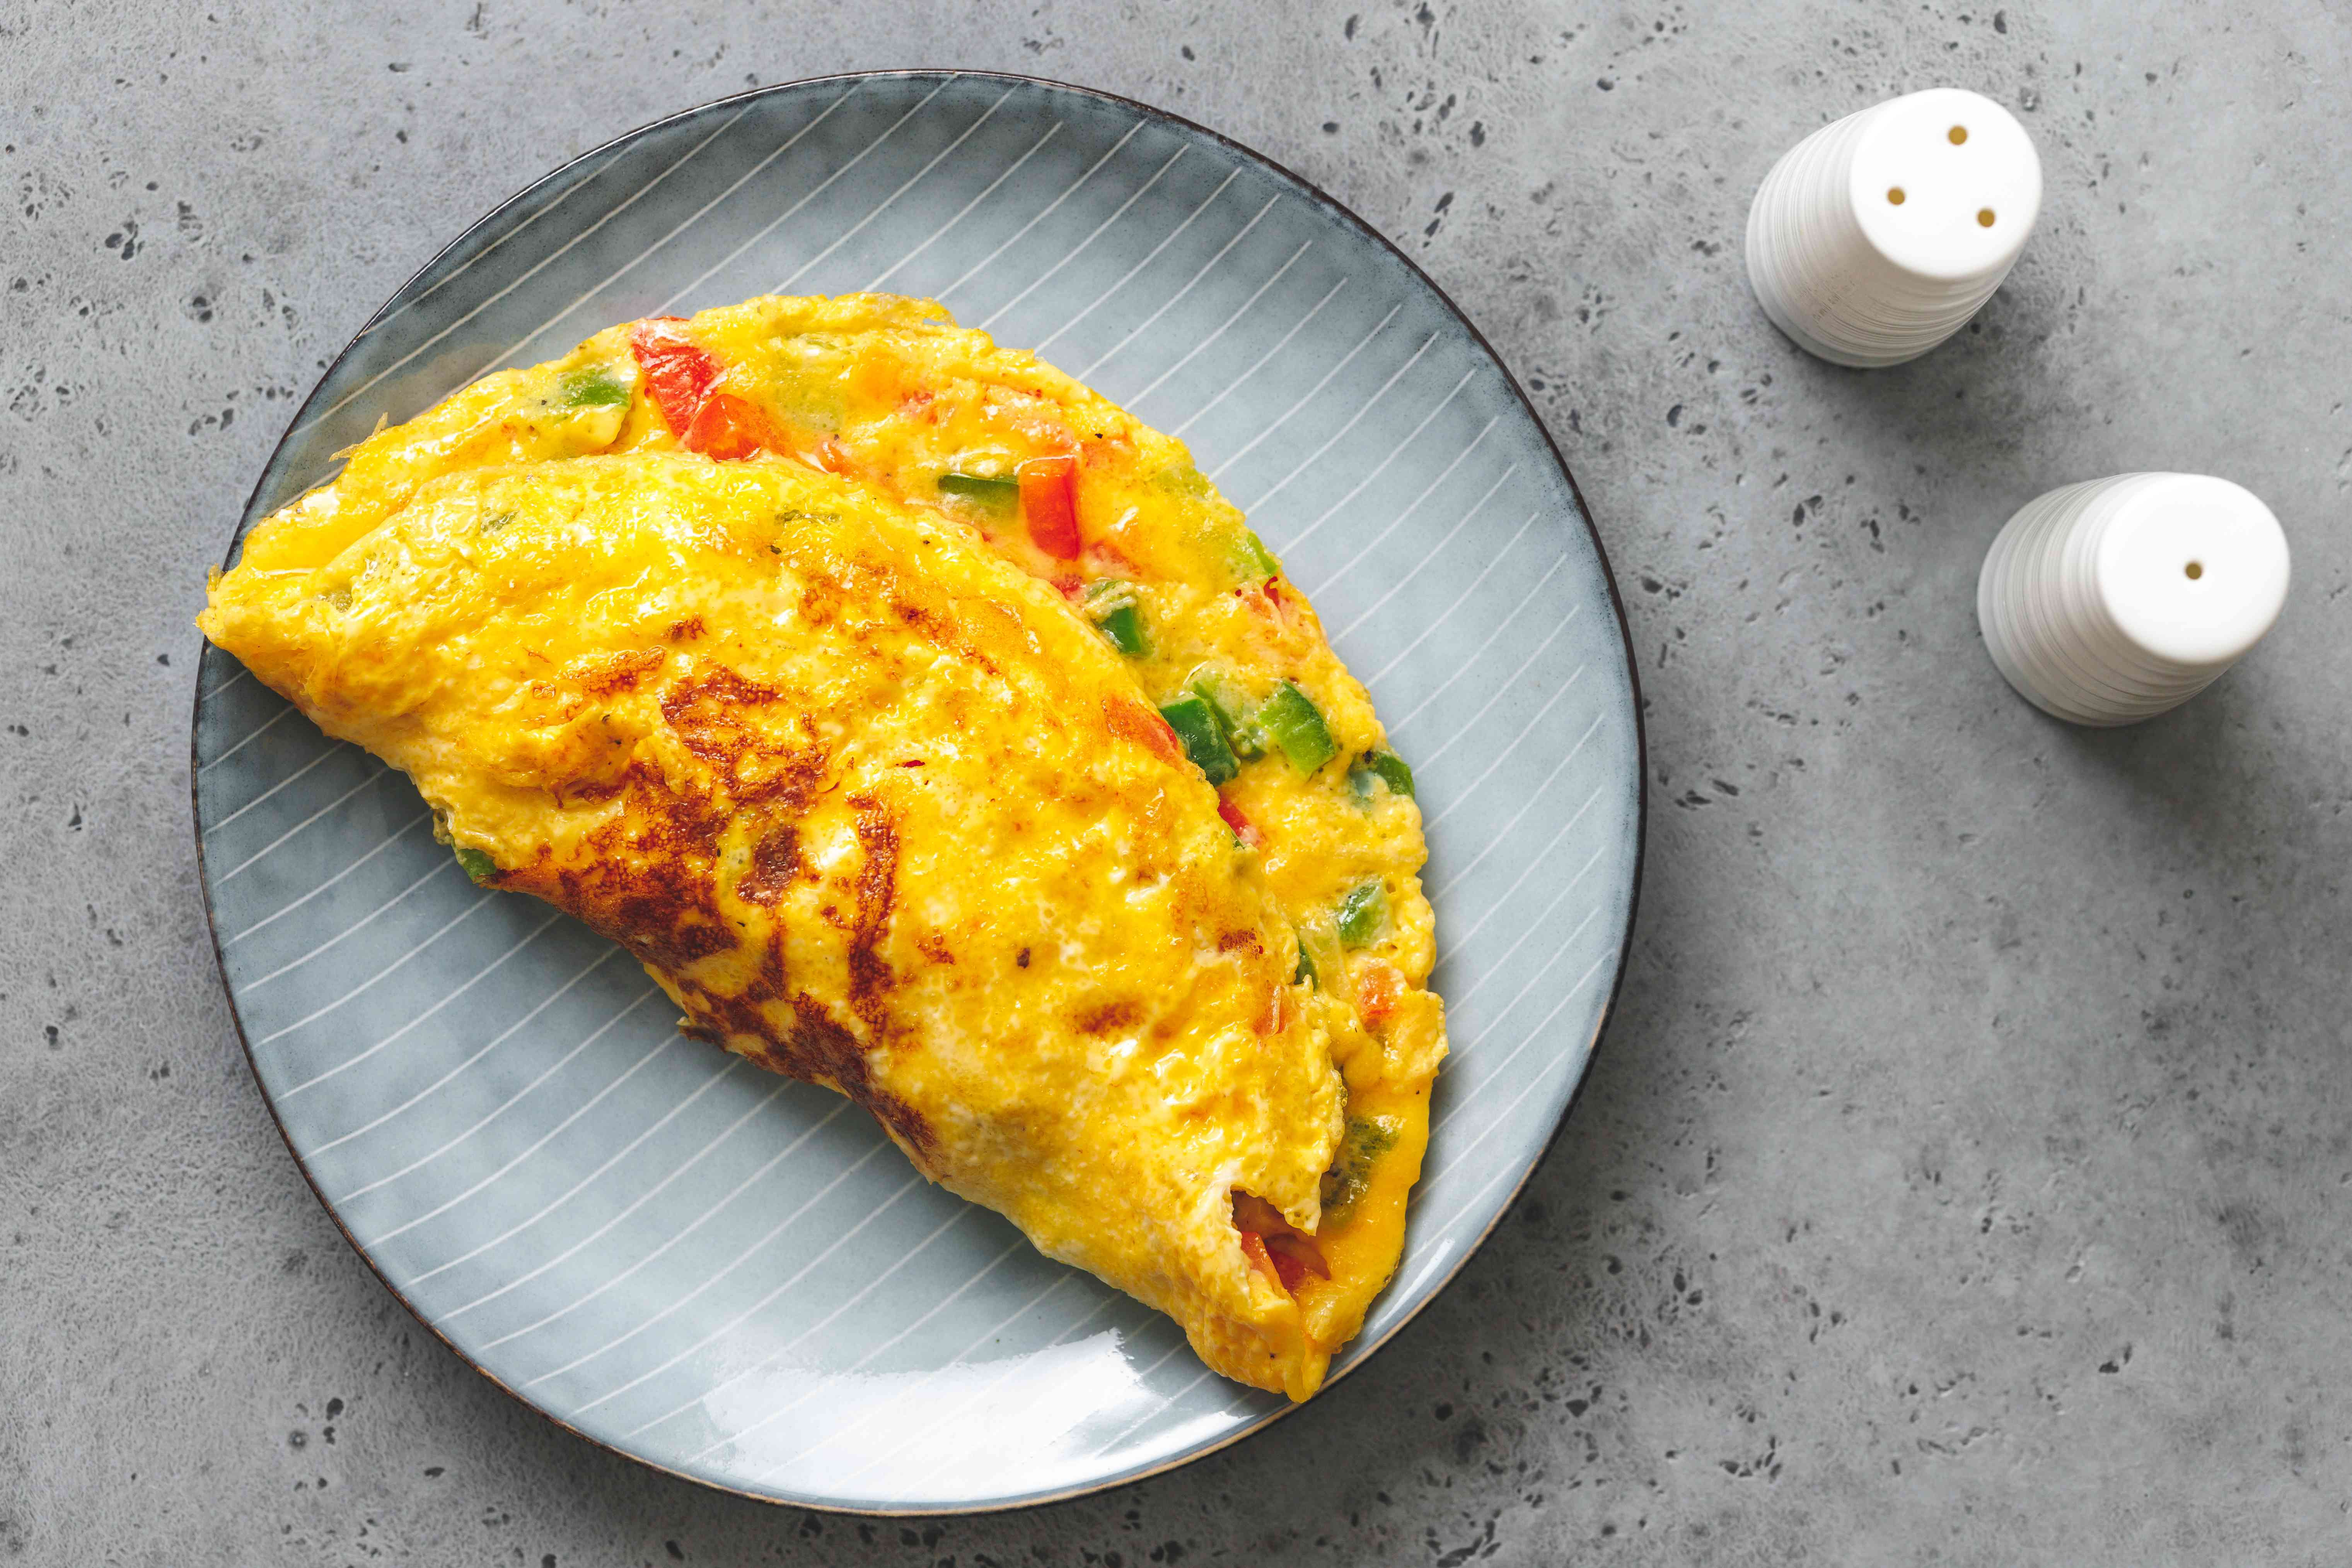 finished vegetarian omelette on a plate